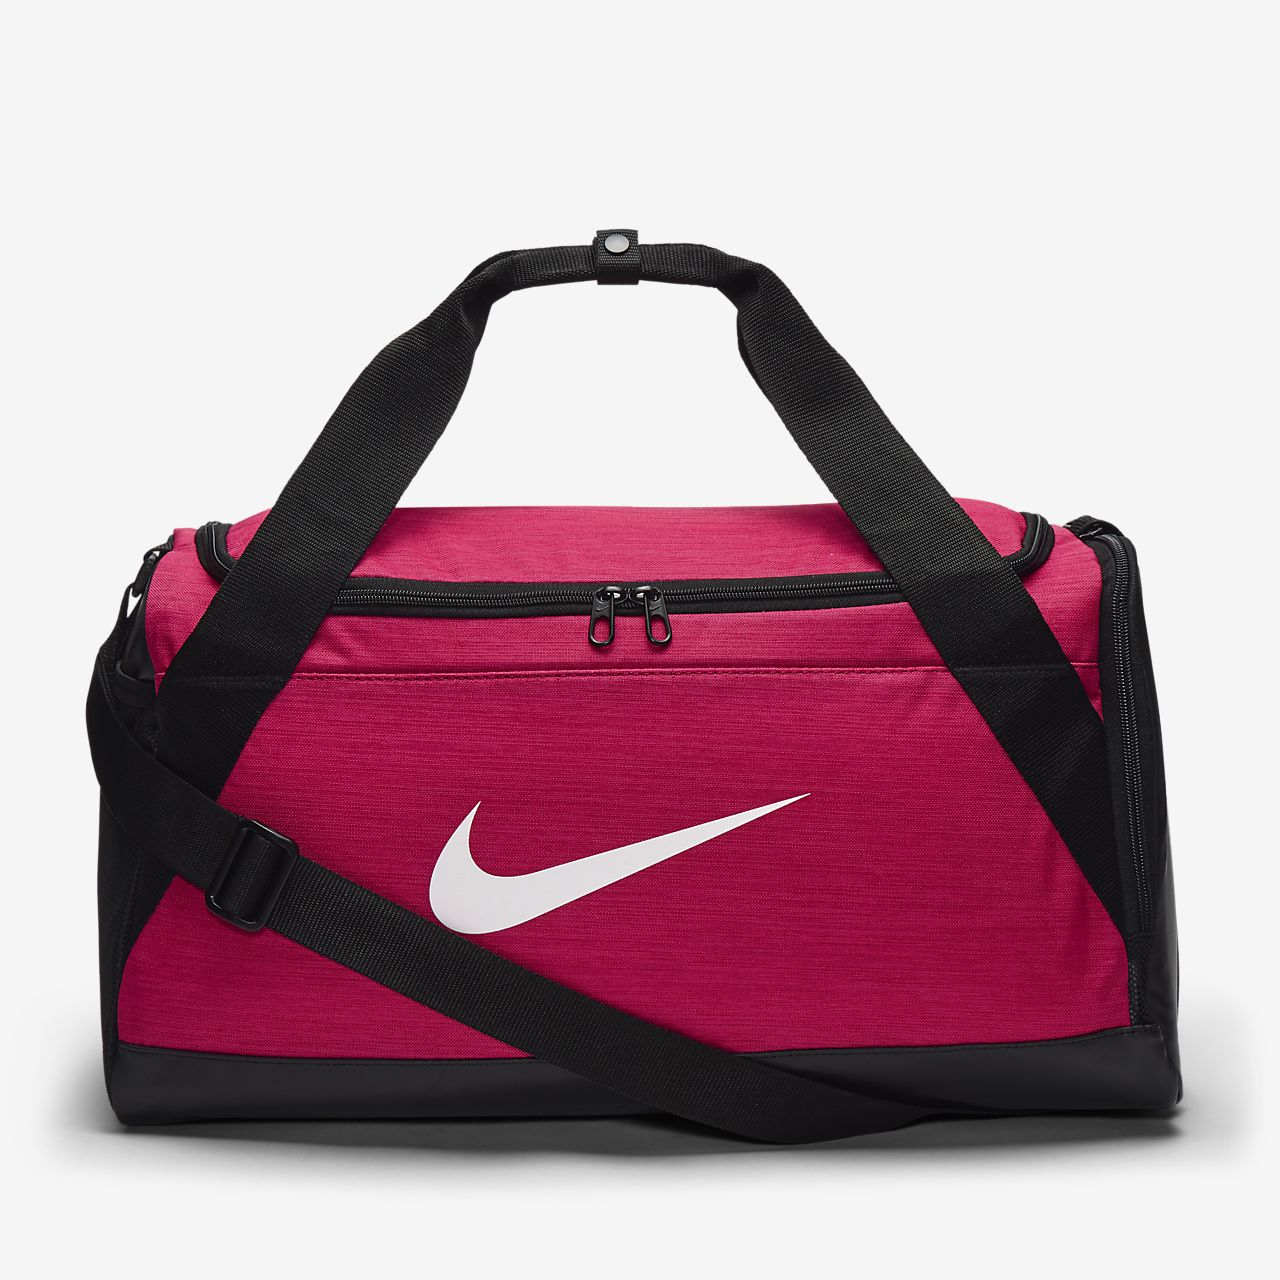 fdb40add6eb3 Nike Brasilia (Small) Training Duffel Bag. Nike.com GB